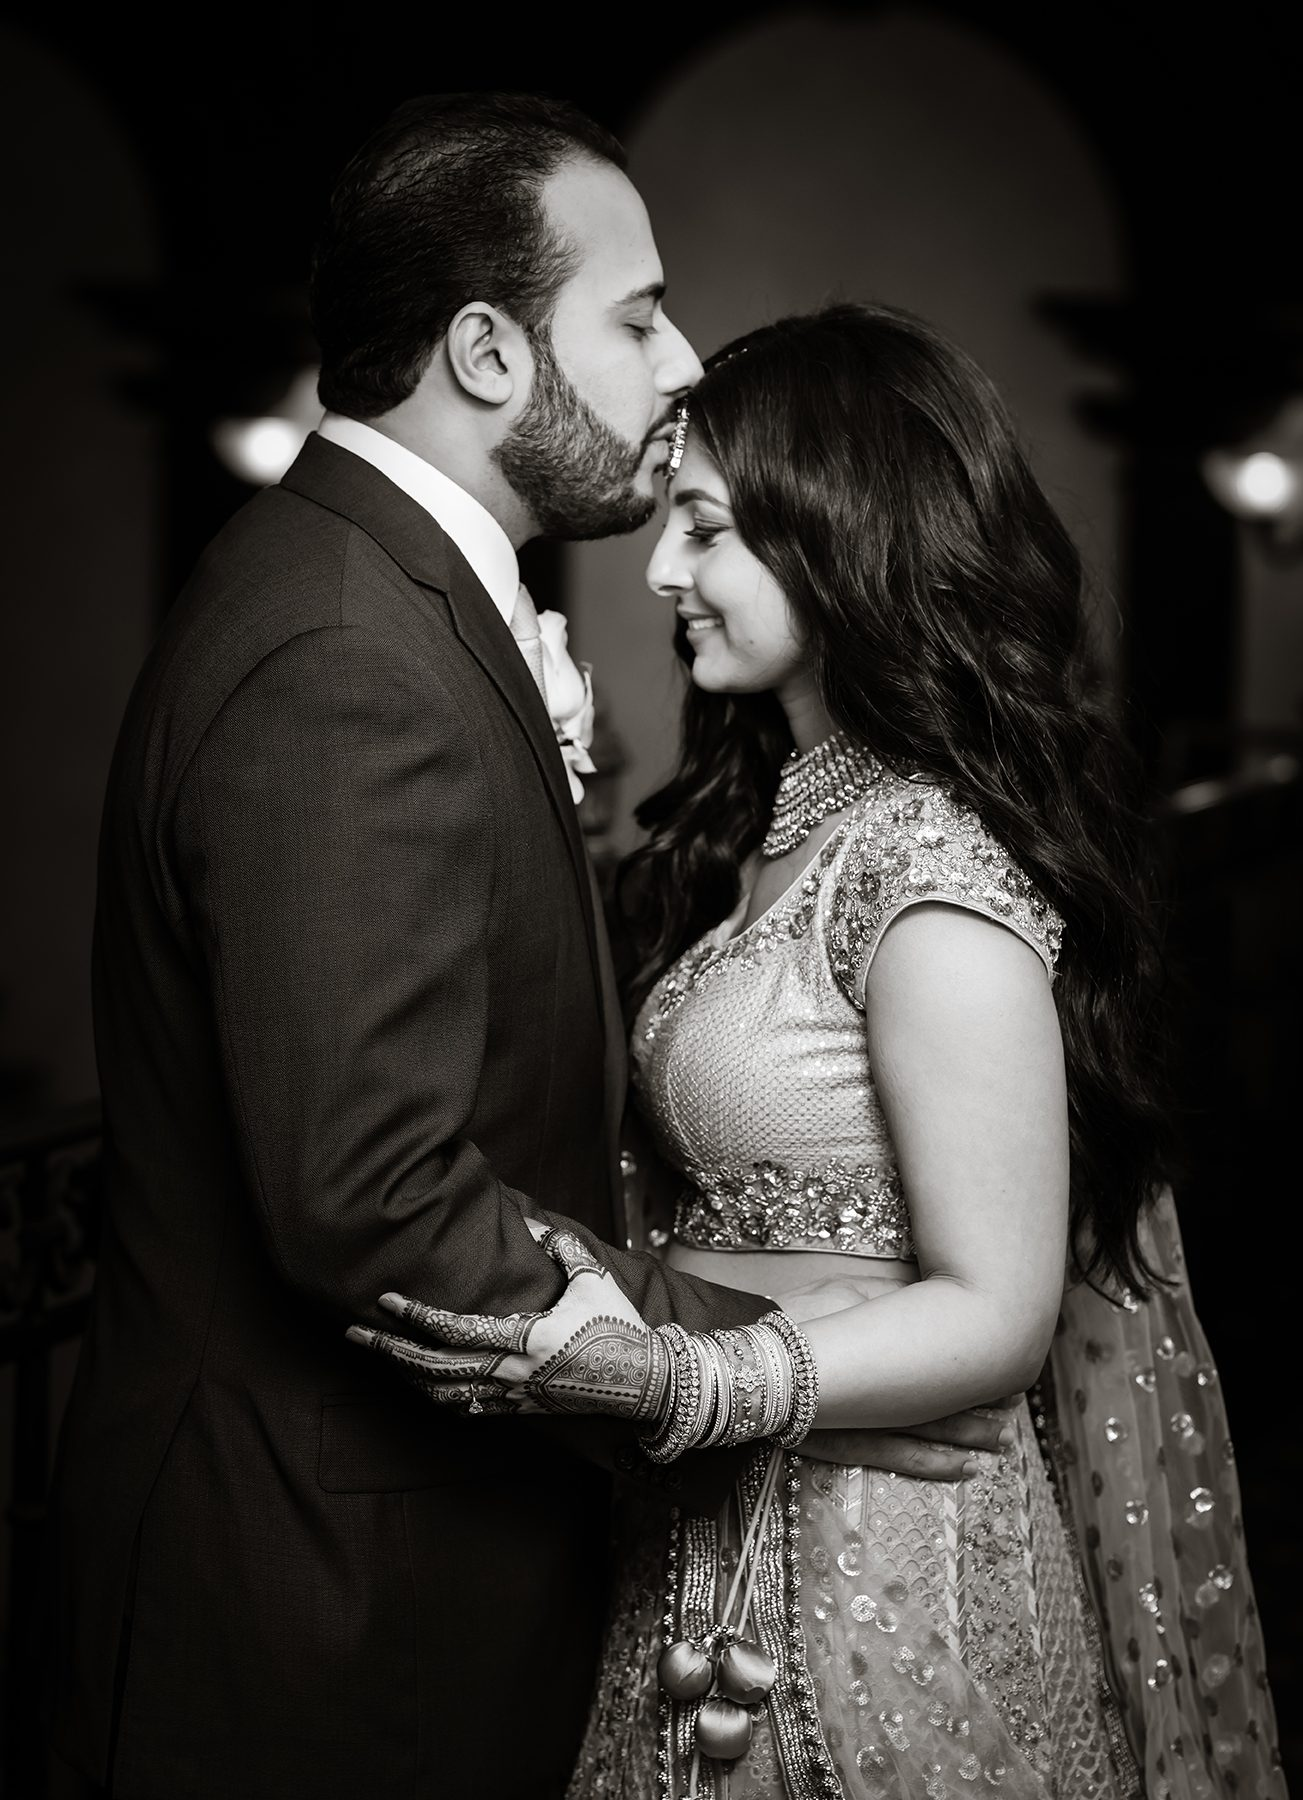 south_asian_wedding_photography_dhoom_studio_new_york41-1303x1800 SOUTH ASIAN WEDDINGS